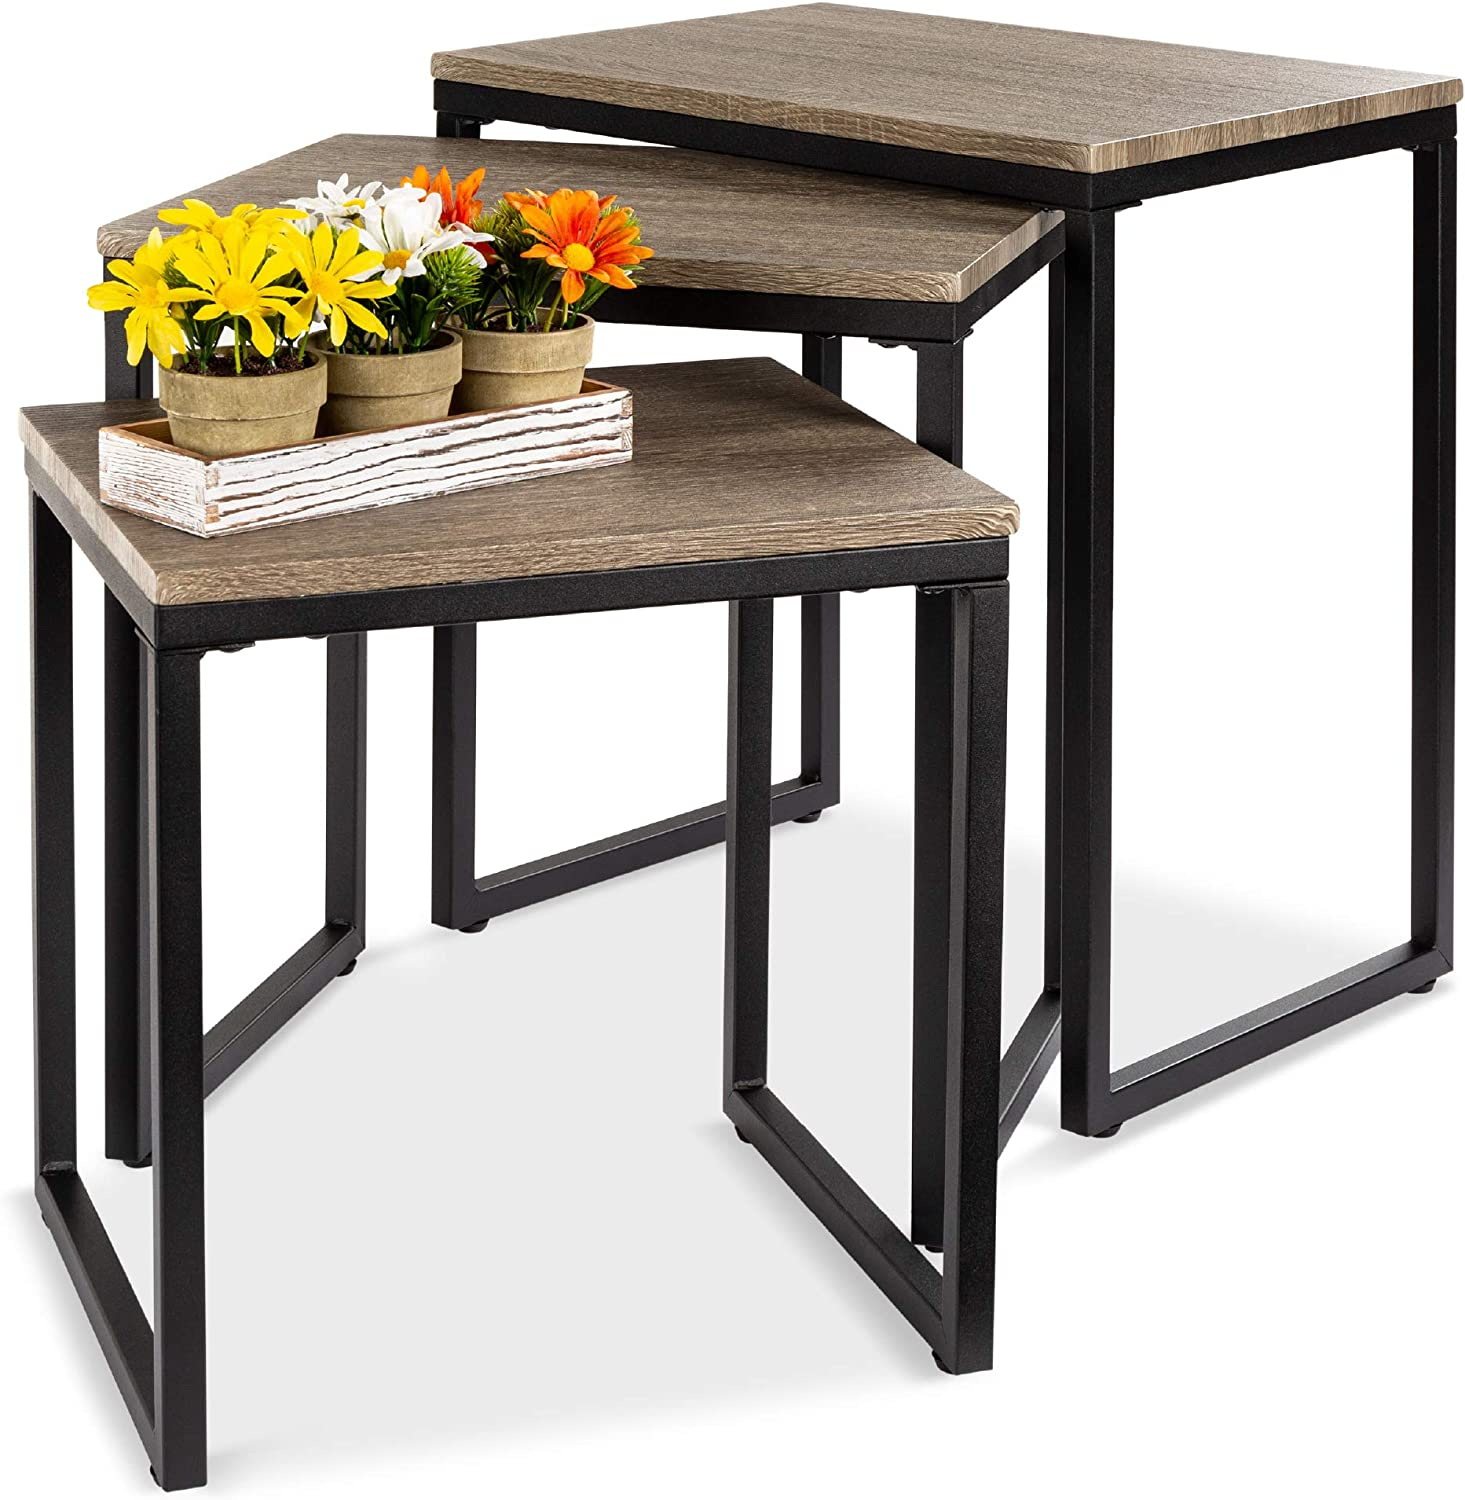 Amazon Com Best Choice Products 3 Piece Modern Stackable Nesting Coffee Accent End Table Furniture Set For Living Room Office W Water Resistant Tabletop Lightweight Design Brown Furniture Decor